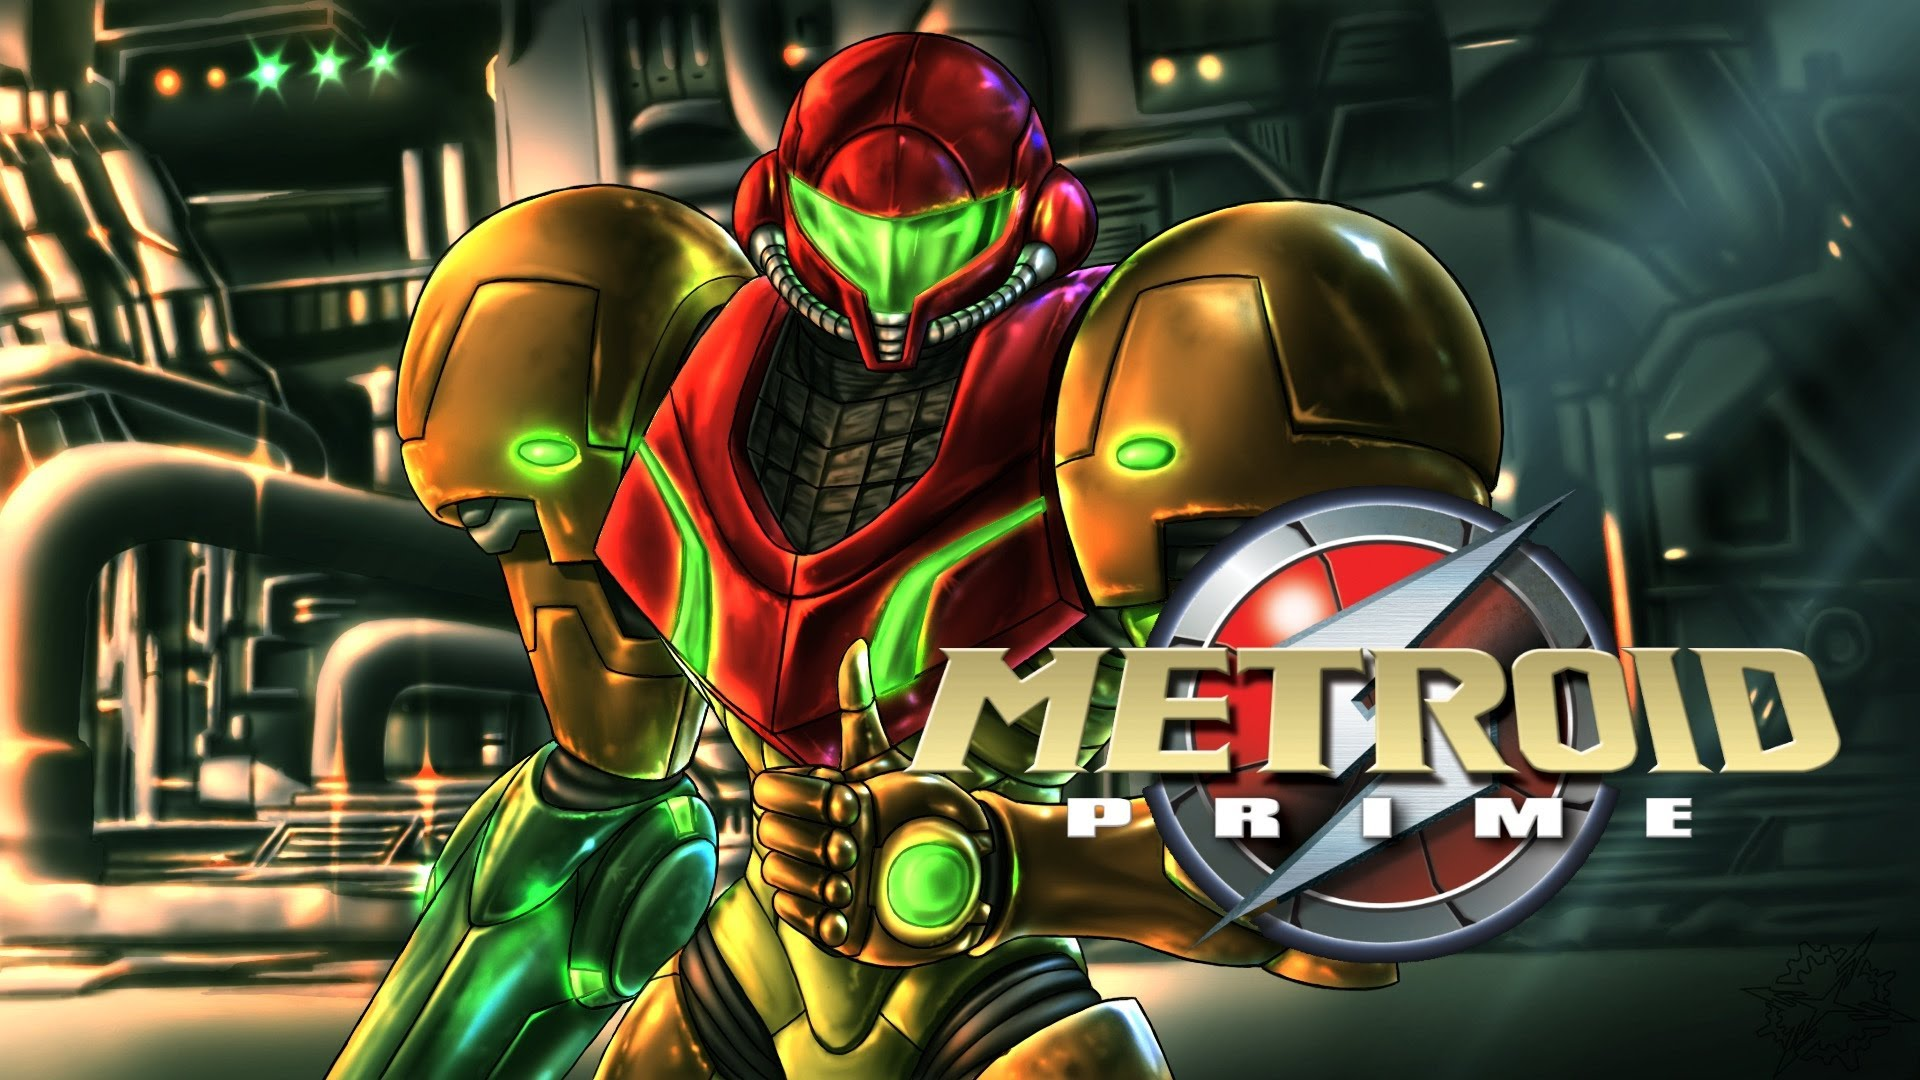 Metroid Prime turns 15 as the franchise finally becomes relevant ...